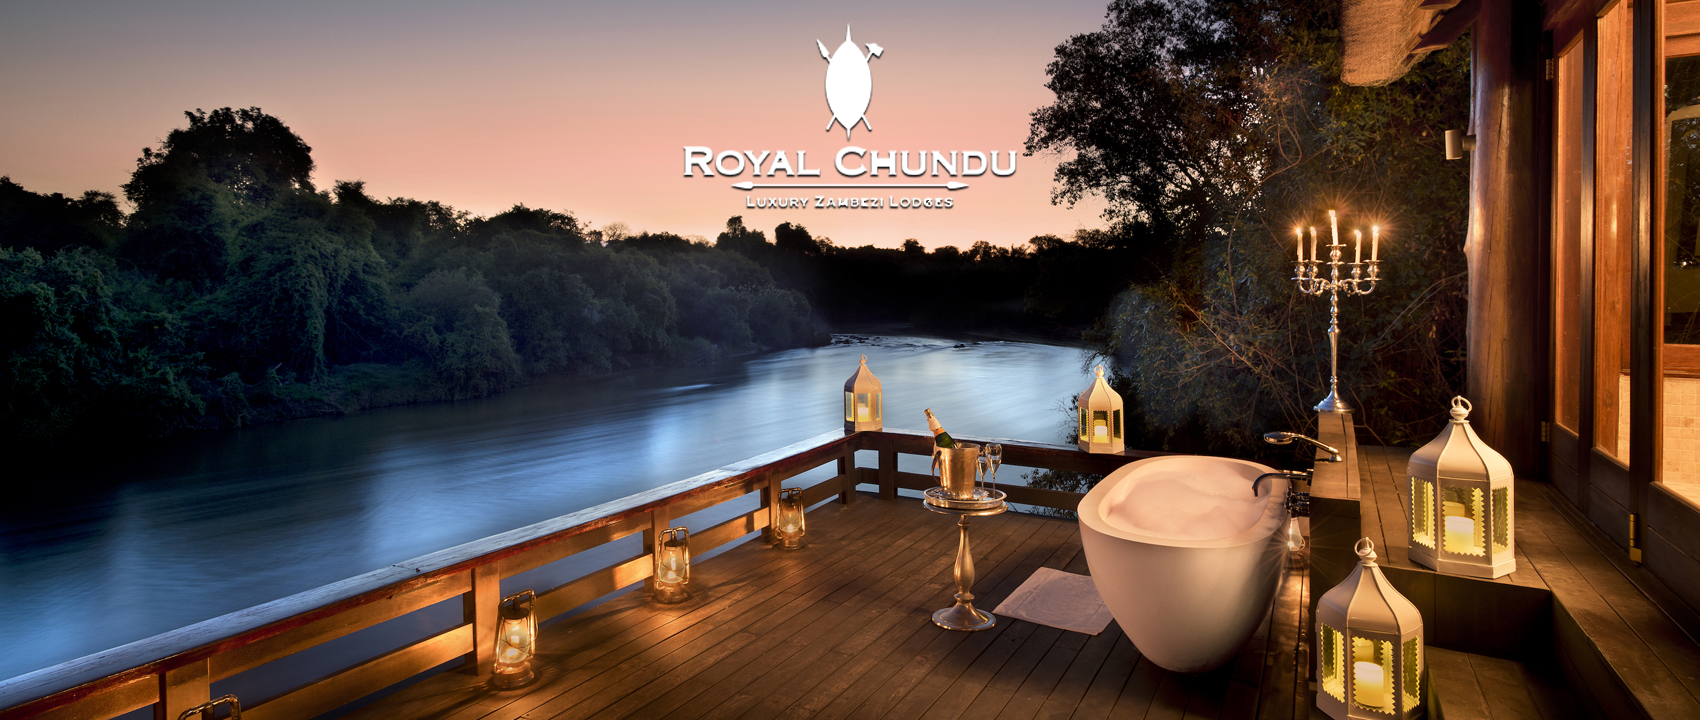 Product-Page_Royal-Chundu-Special